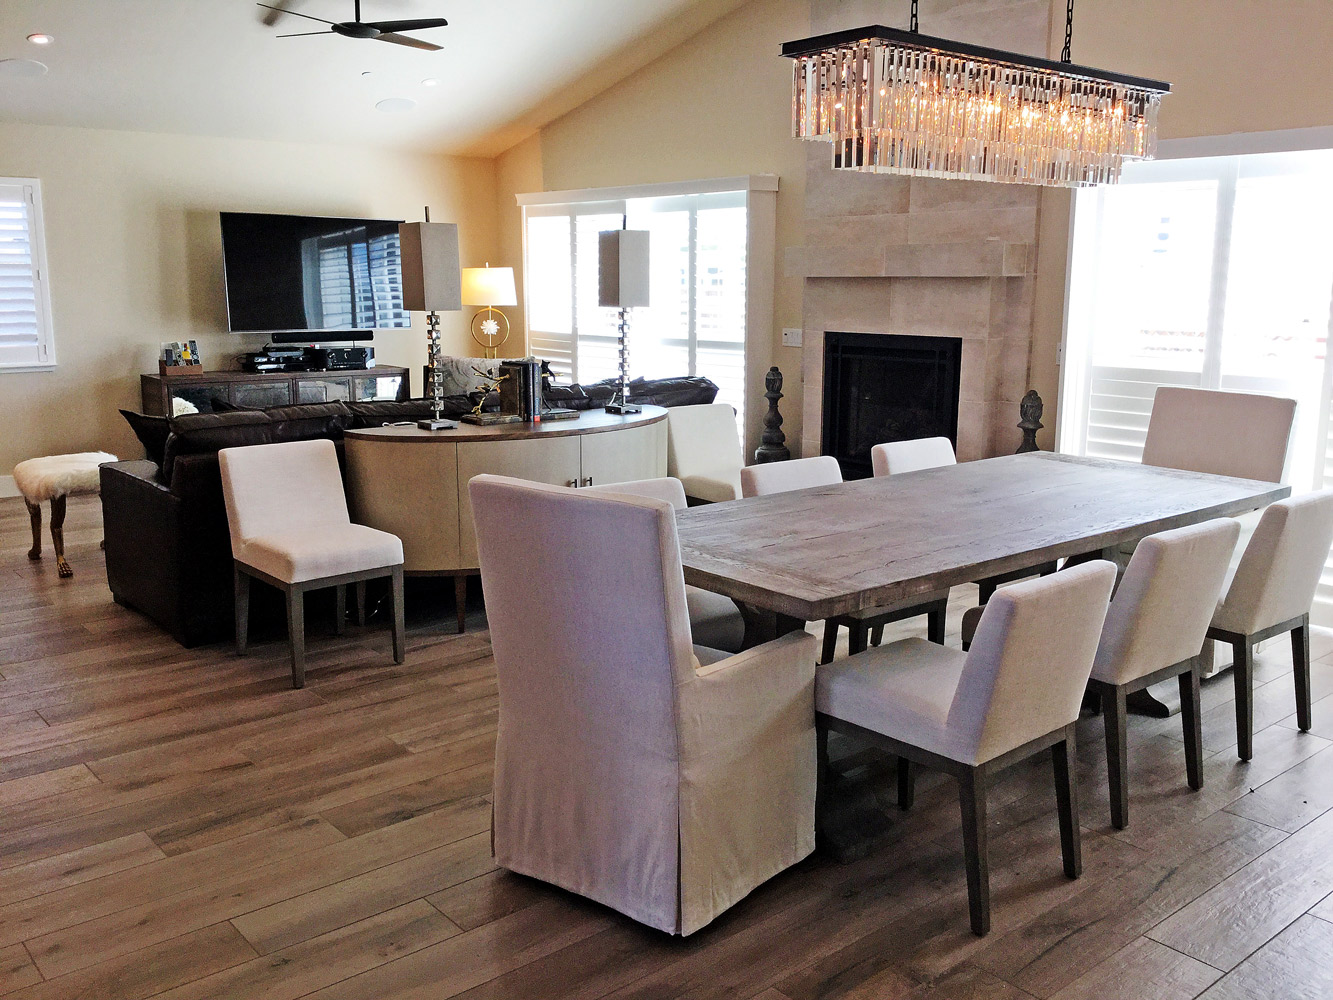 Great room in home rebuilt after 2017 wildfires in the Coffey Park neighborhood in Santa Rosa CA